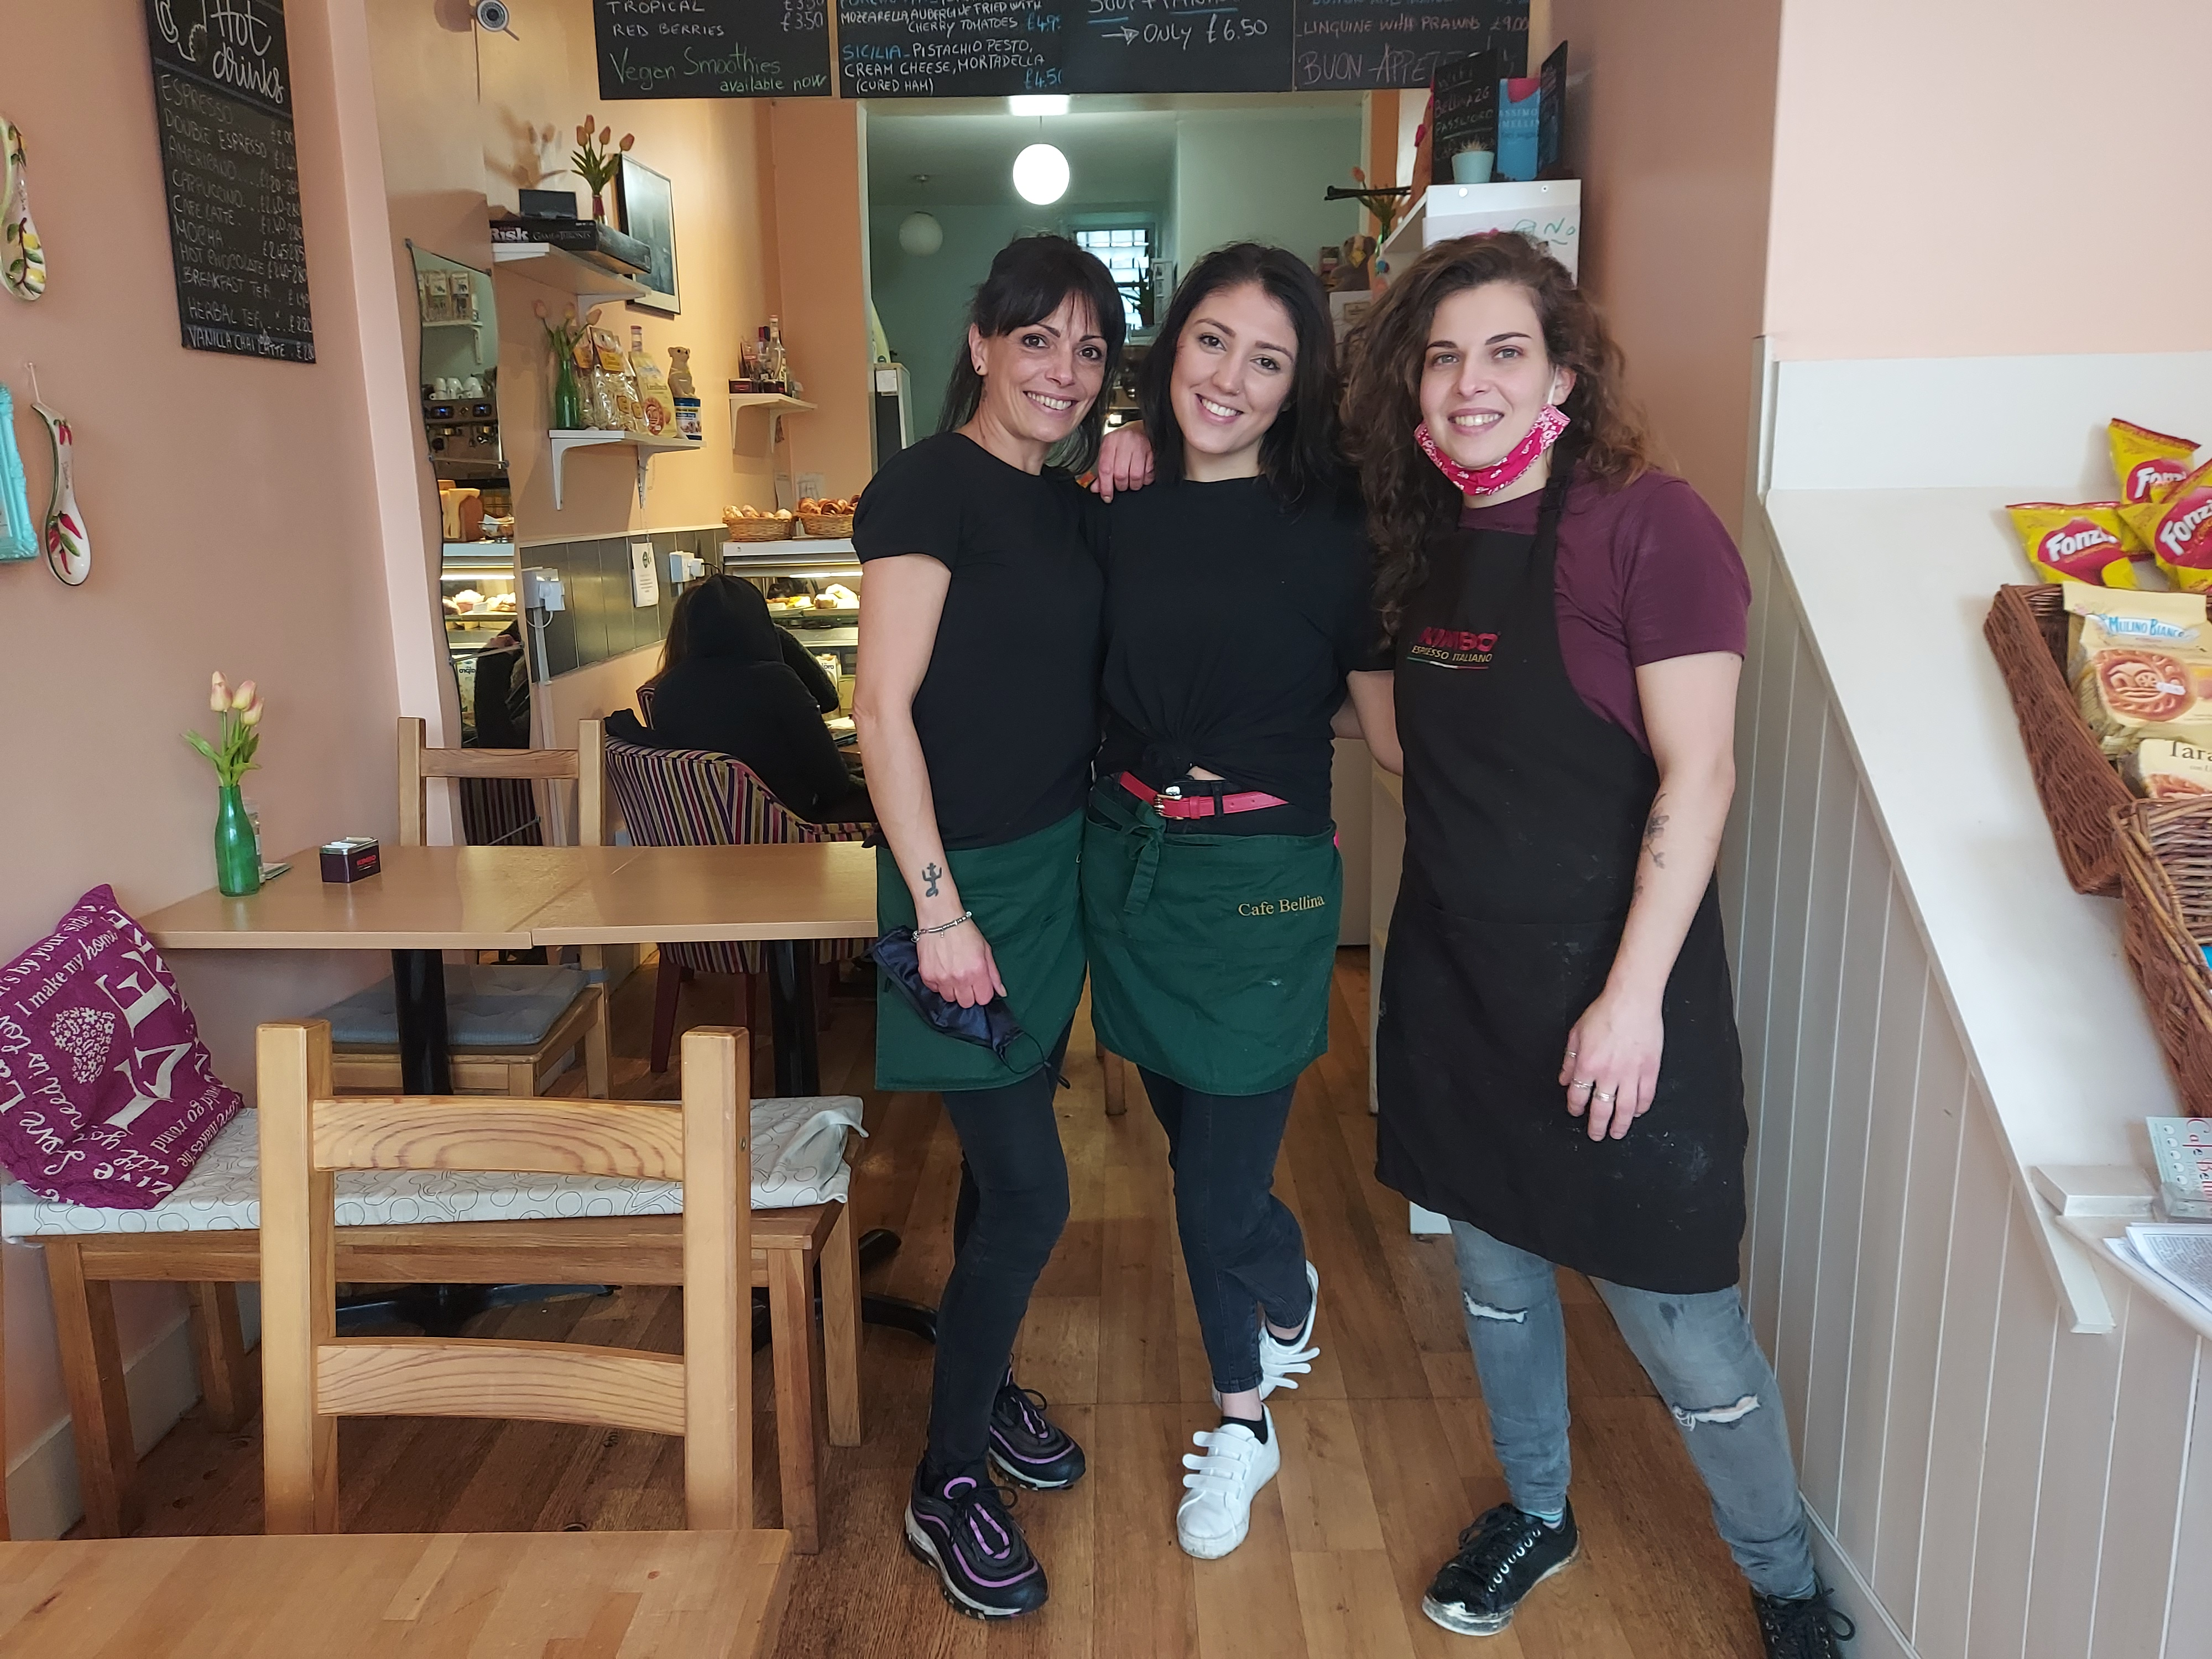 Three women standing inside Cafe Bellina.